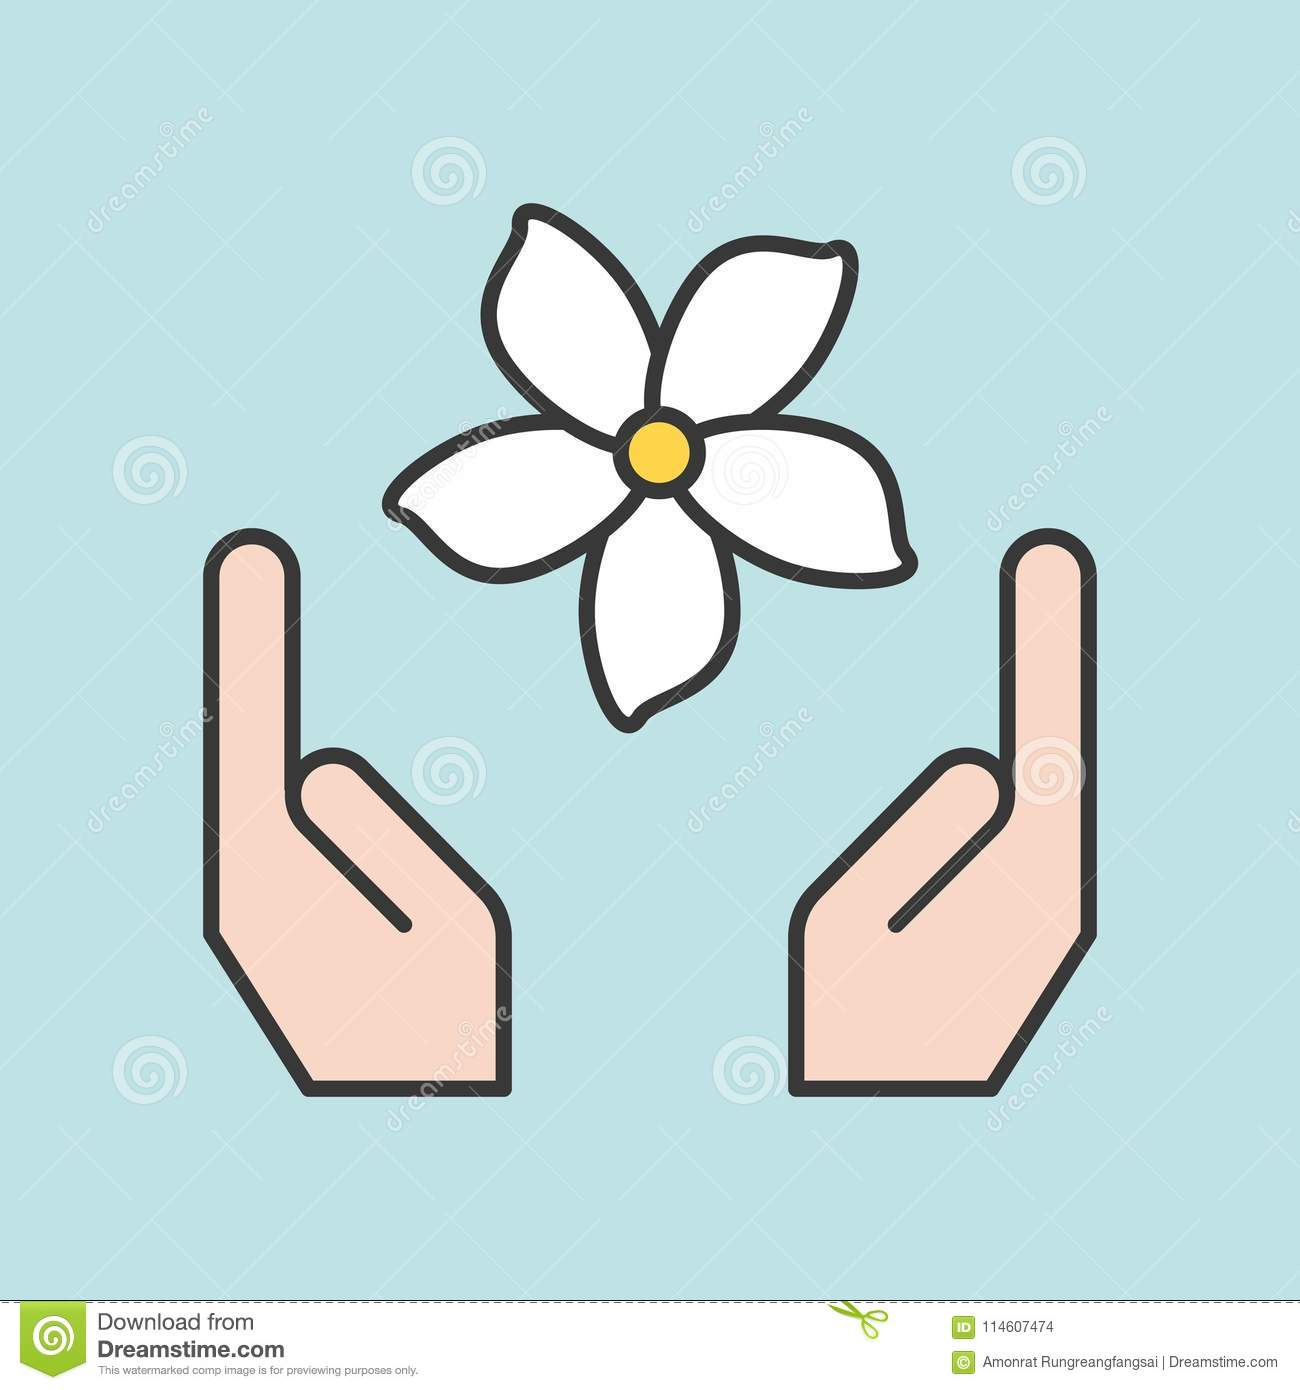 Hand And Jasmine Flower Stock Vector Illustration Of Floral 114607474